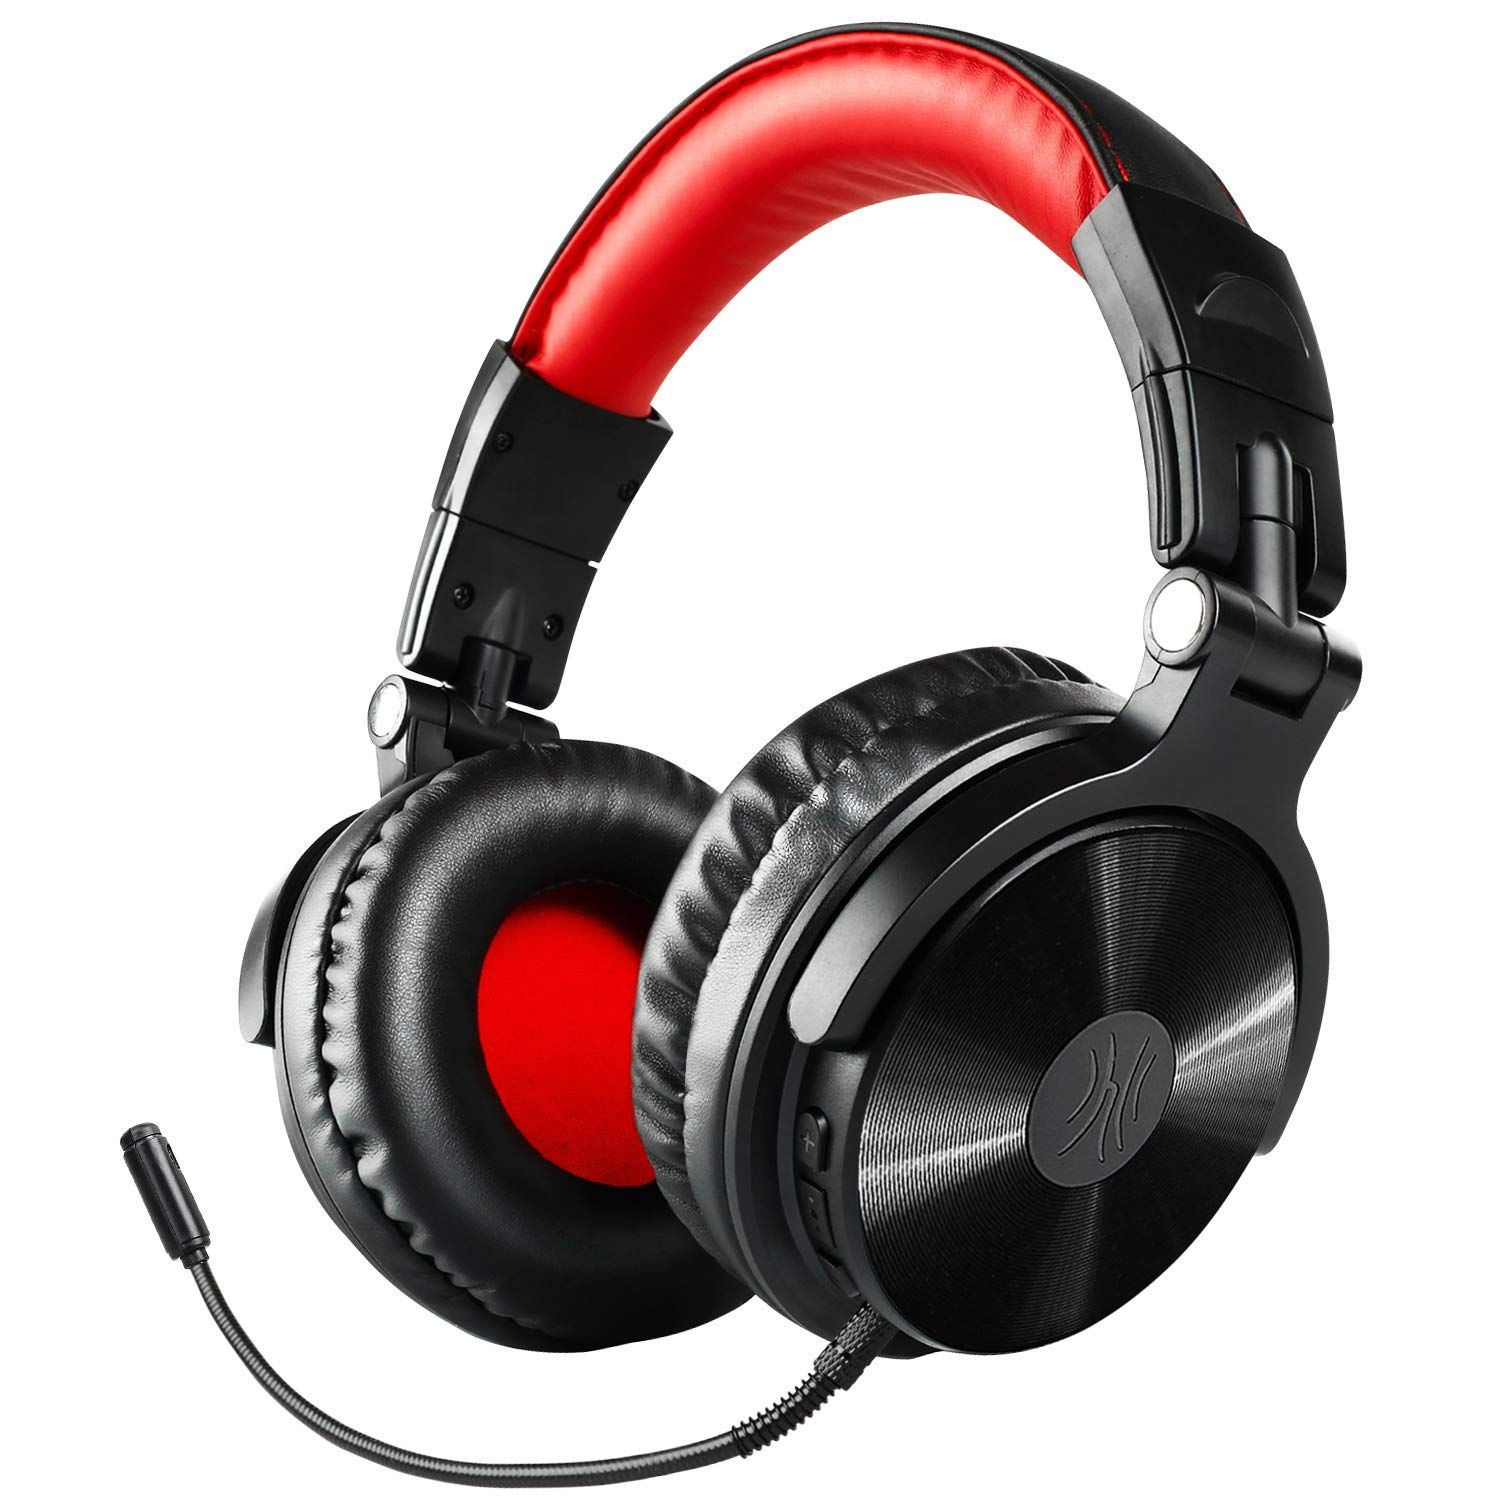 Bluetooth Over Ear Headphones Oneodio Wired Gaming Stereo Headsets With Detachable Mic For Ps4 Gaming Headset Gaming Headphones Bluetooth Headphones Wireless